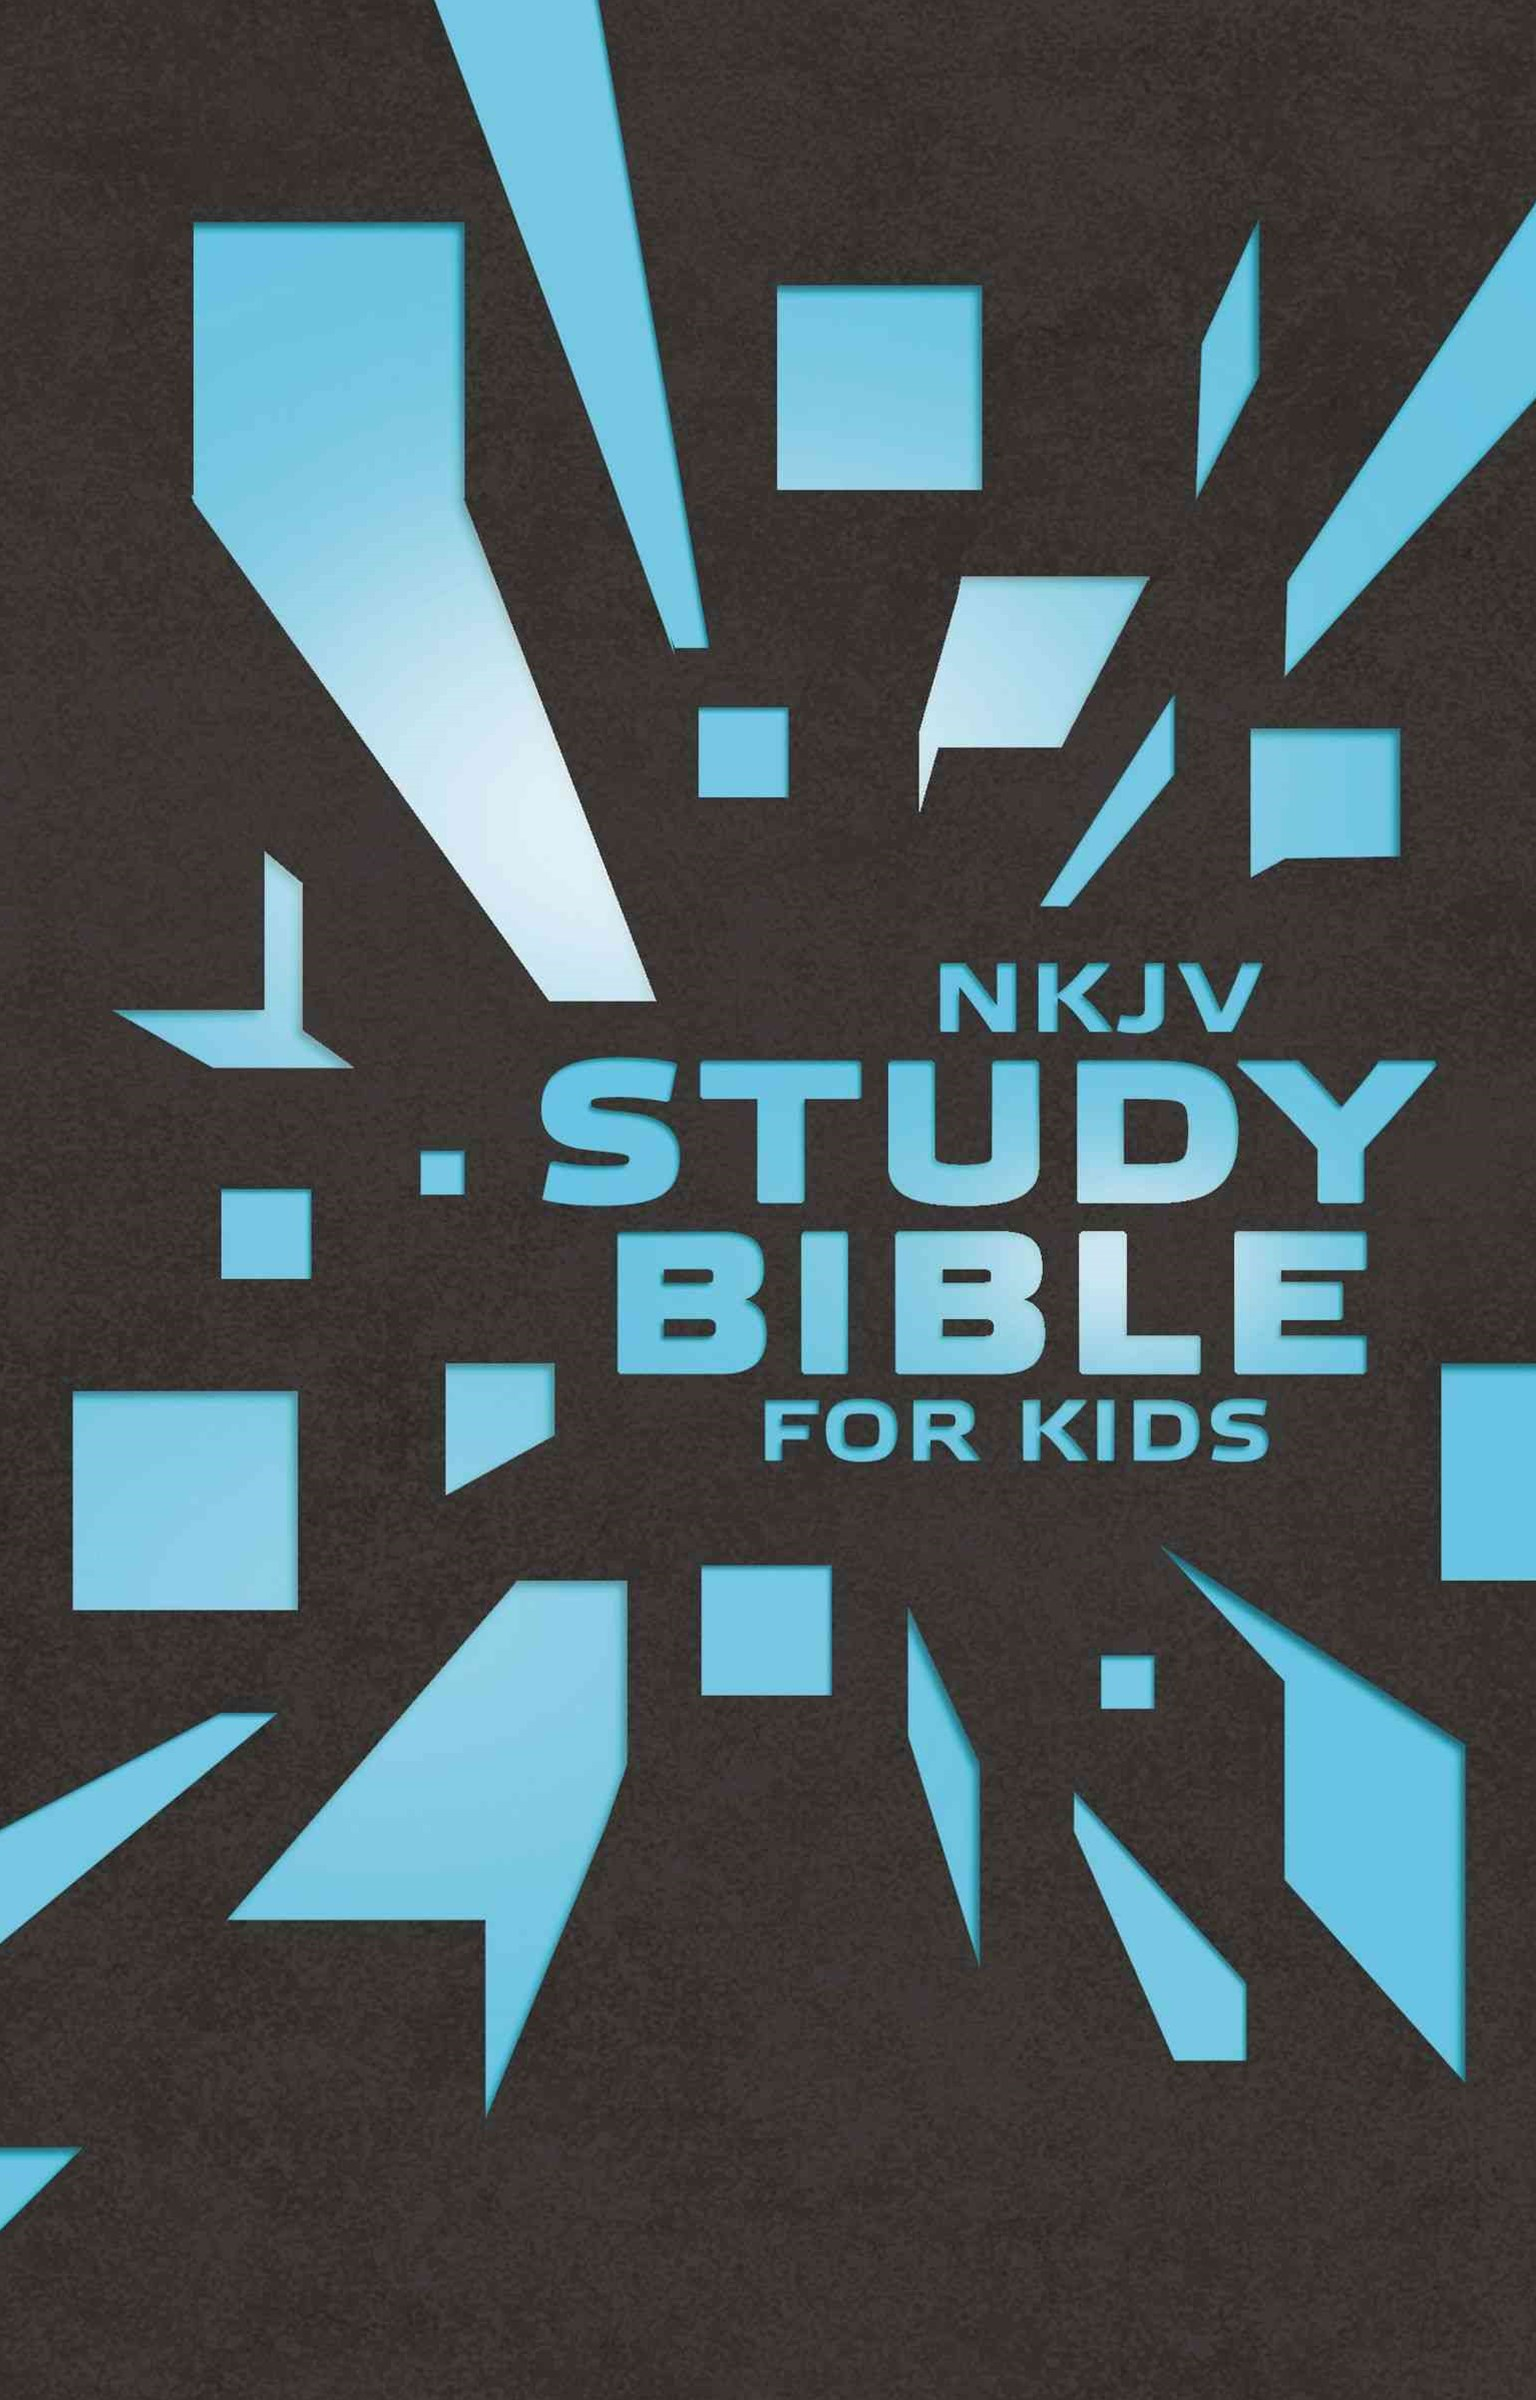 NKJV Kids Study Bible Brown Cover: The Premiere NKJV Study Bible for Kids